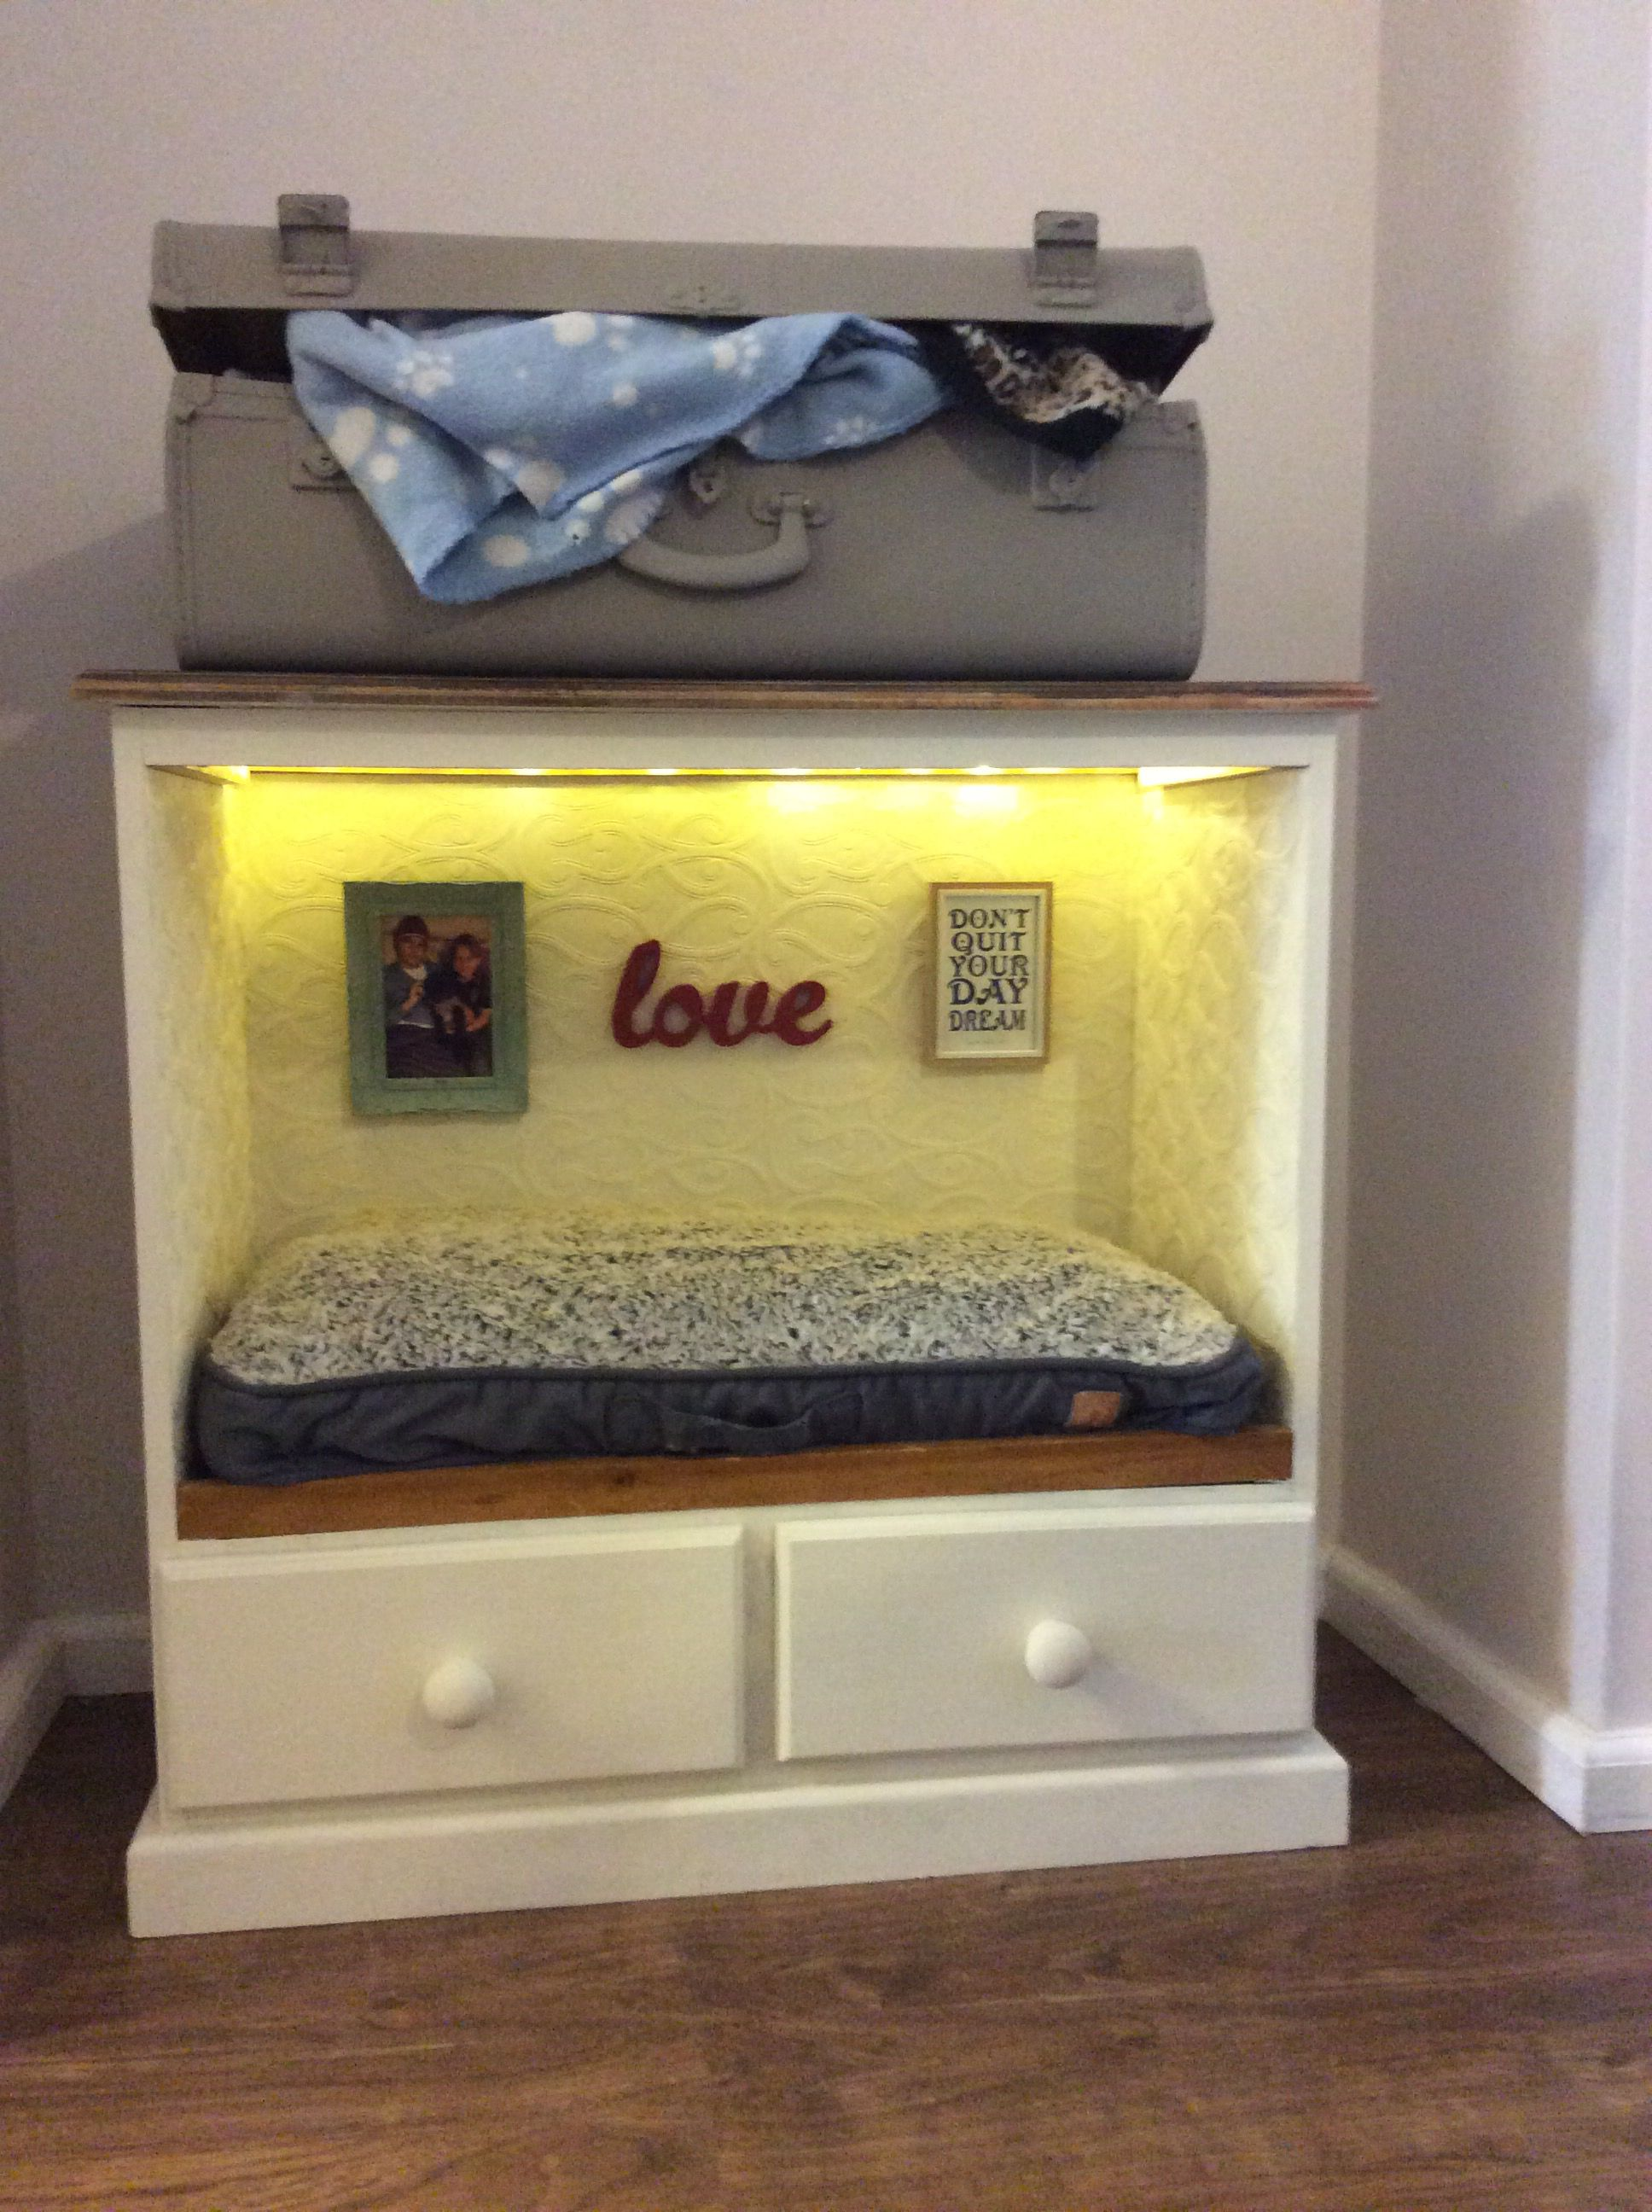 Up Cycled Dog Bed Made From Old Drawers With An Old Suitcase For Storage Diy Pet Bed Cool Dog Beds Dog House Bed